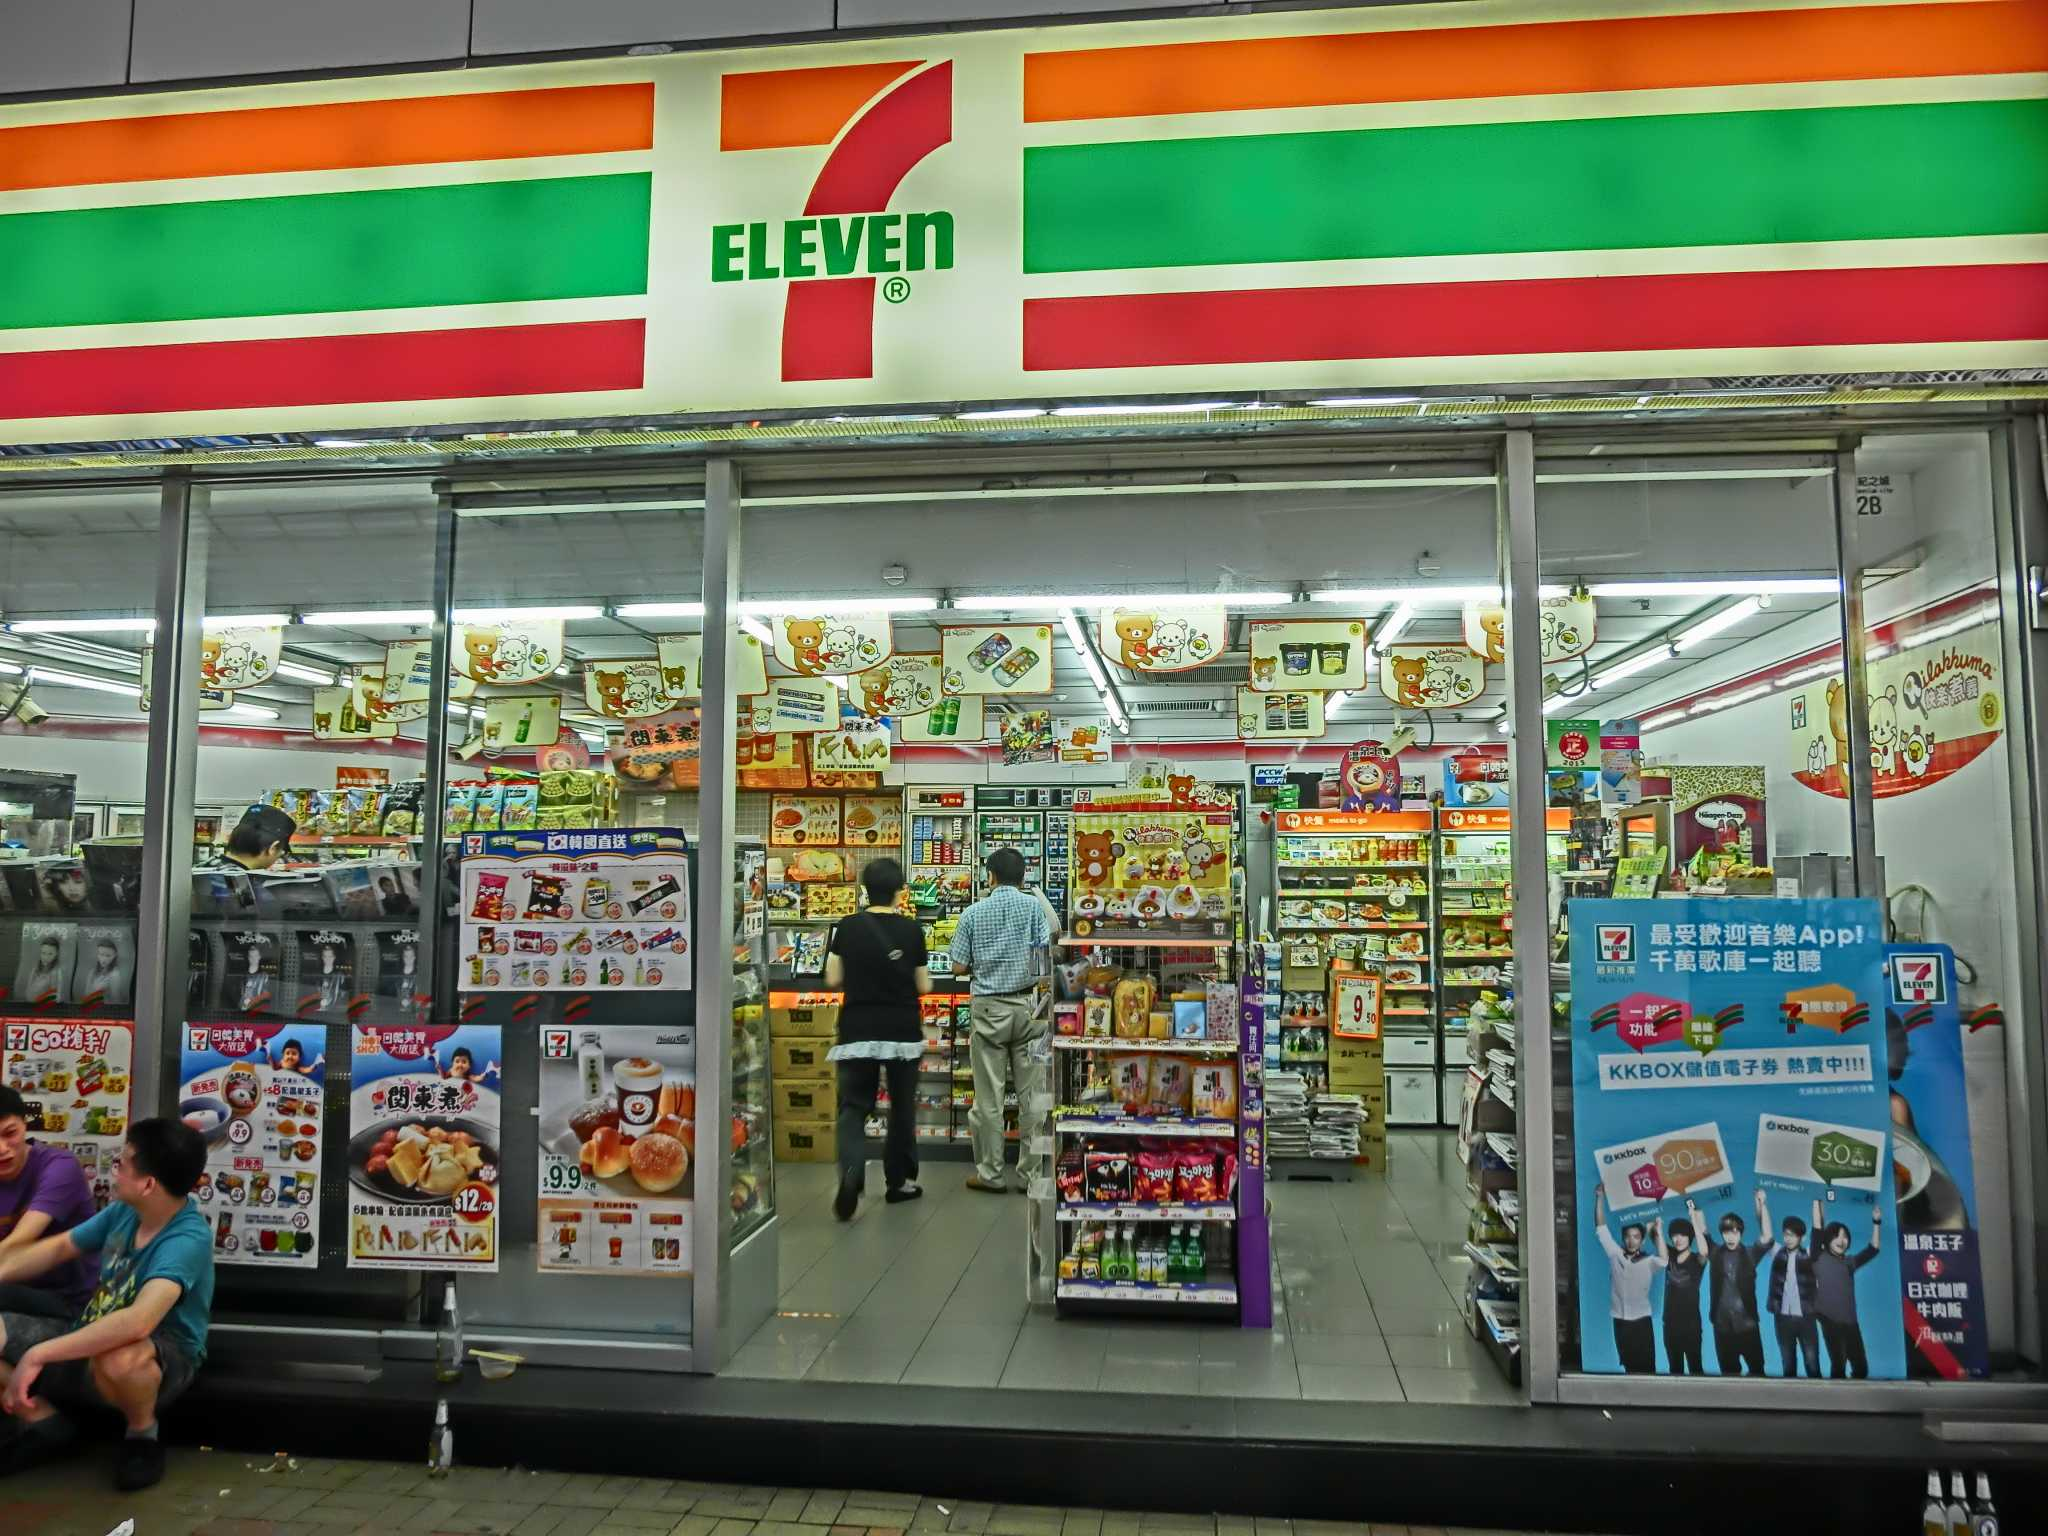 7 eleven hours, 7 11 hours